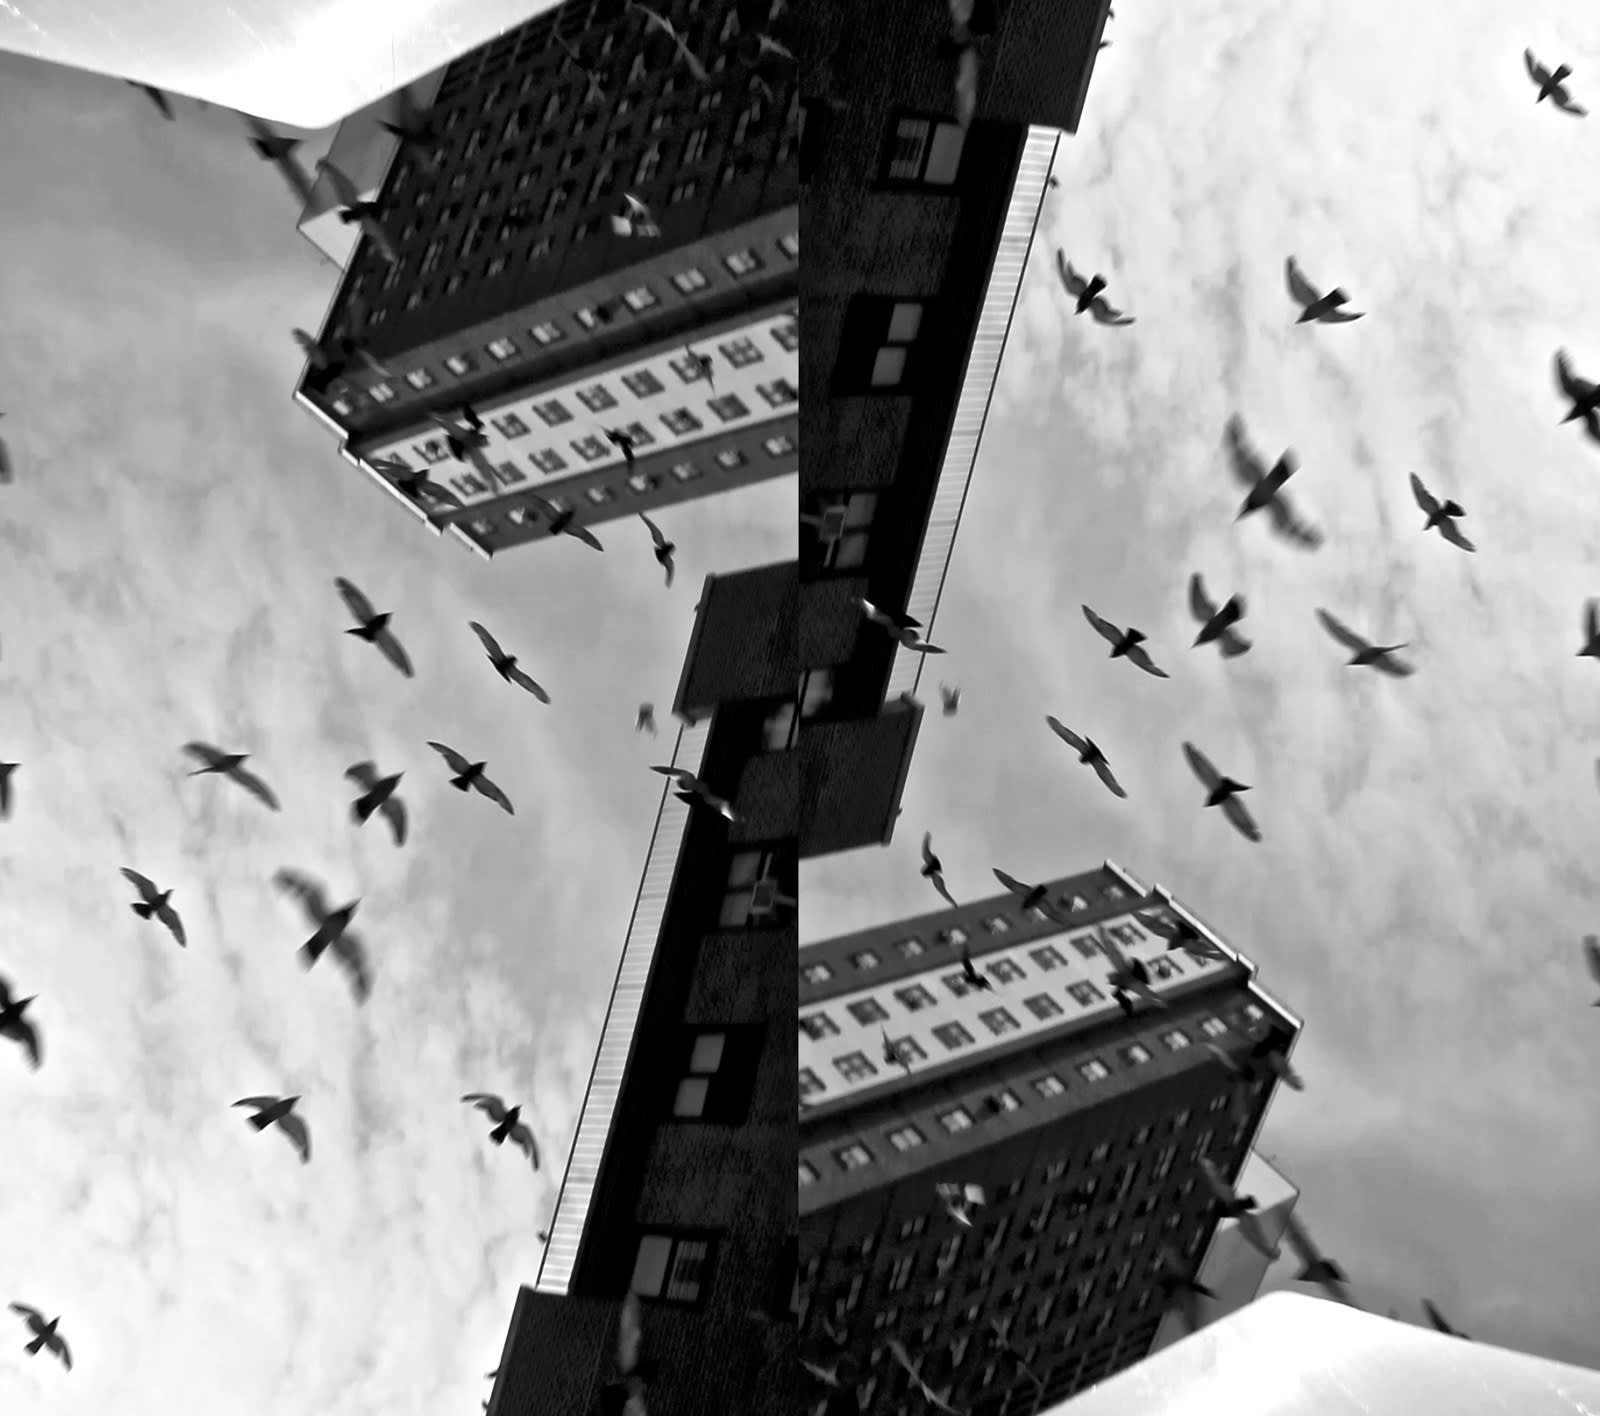 birds in New York signed, dated and certified Archival inkjet print frame: 46 x 53 in / (116.8 x 134.6 cm) Edition of 10 + 2 AP (0107)